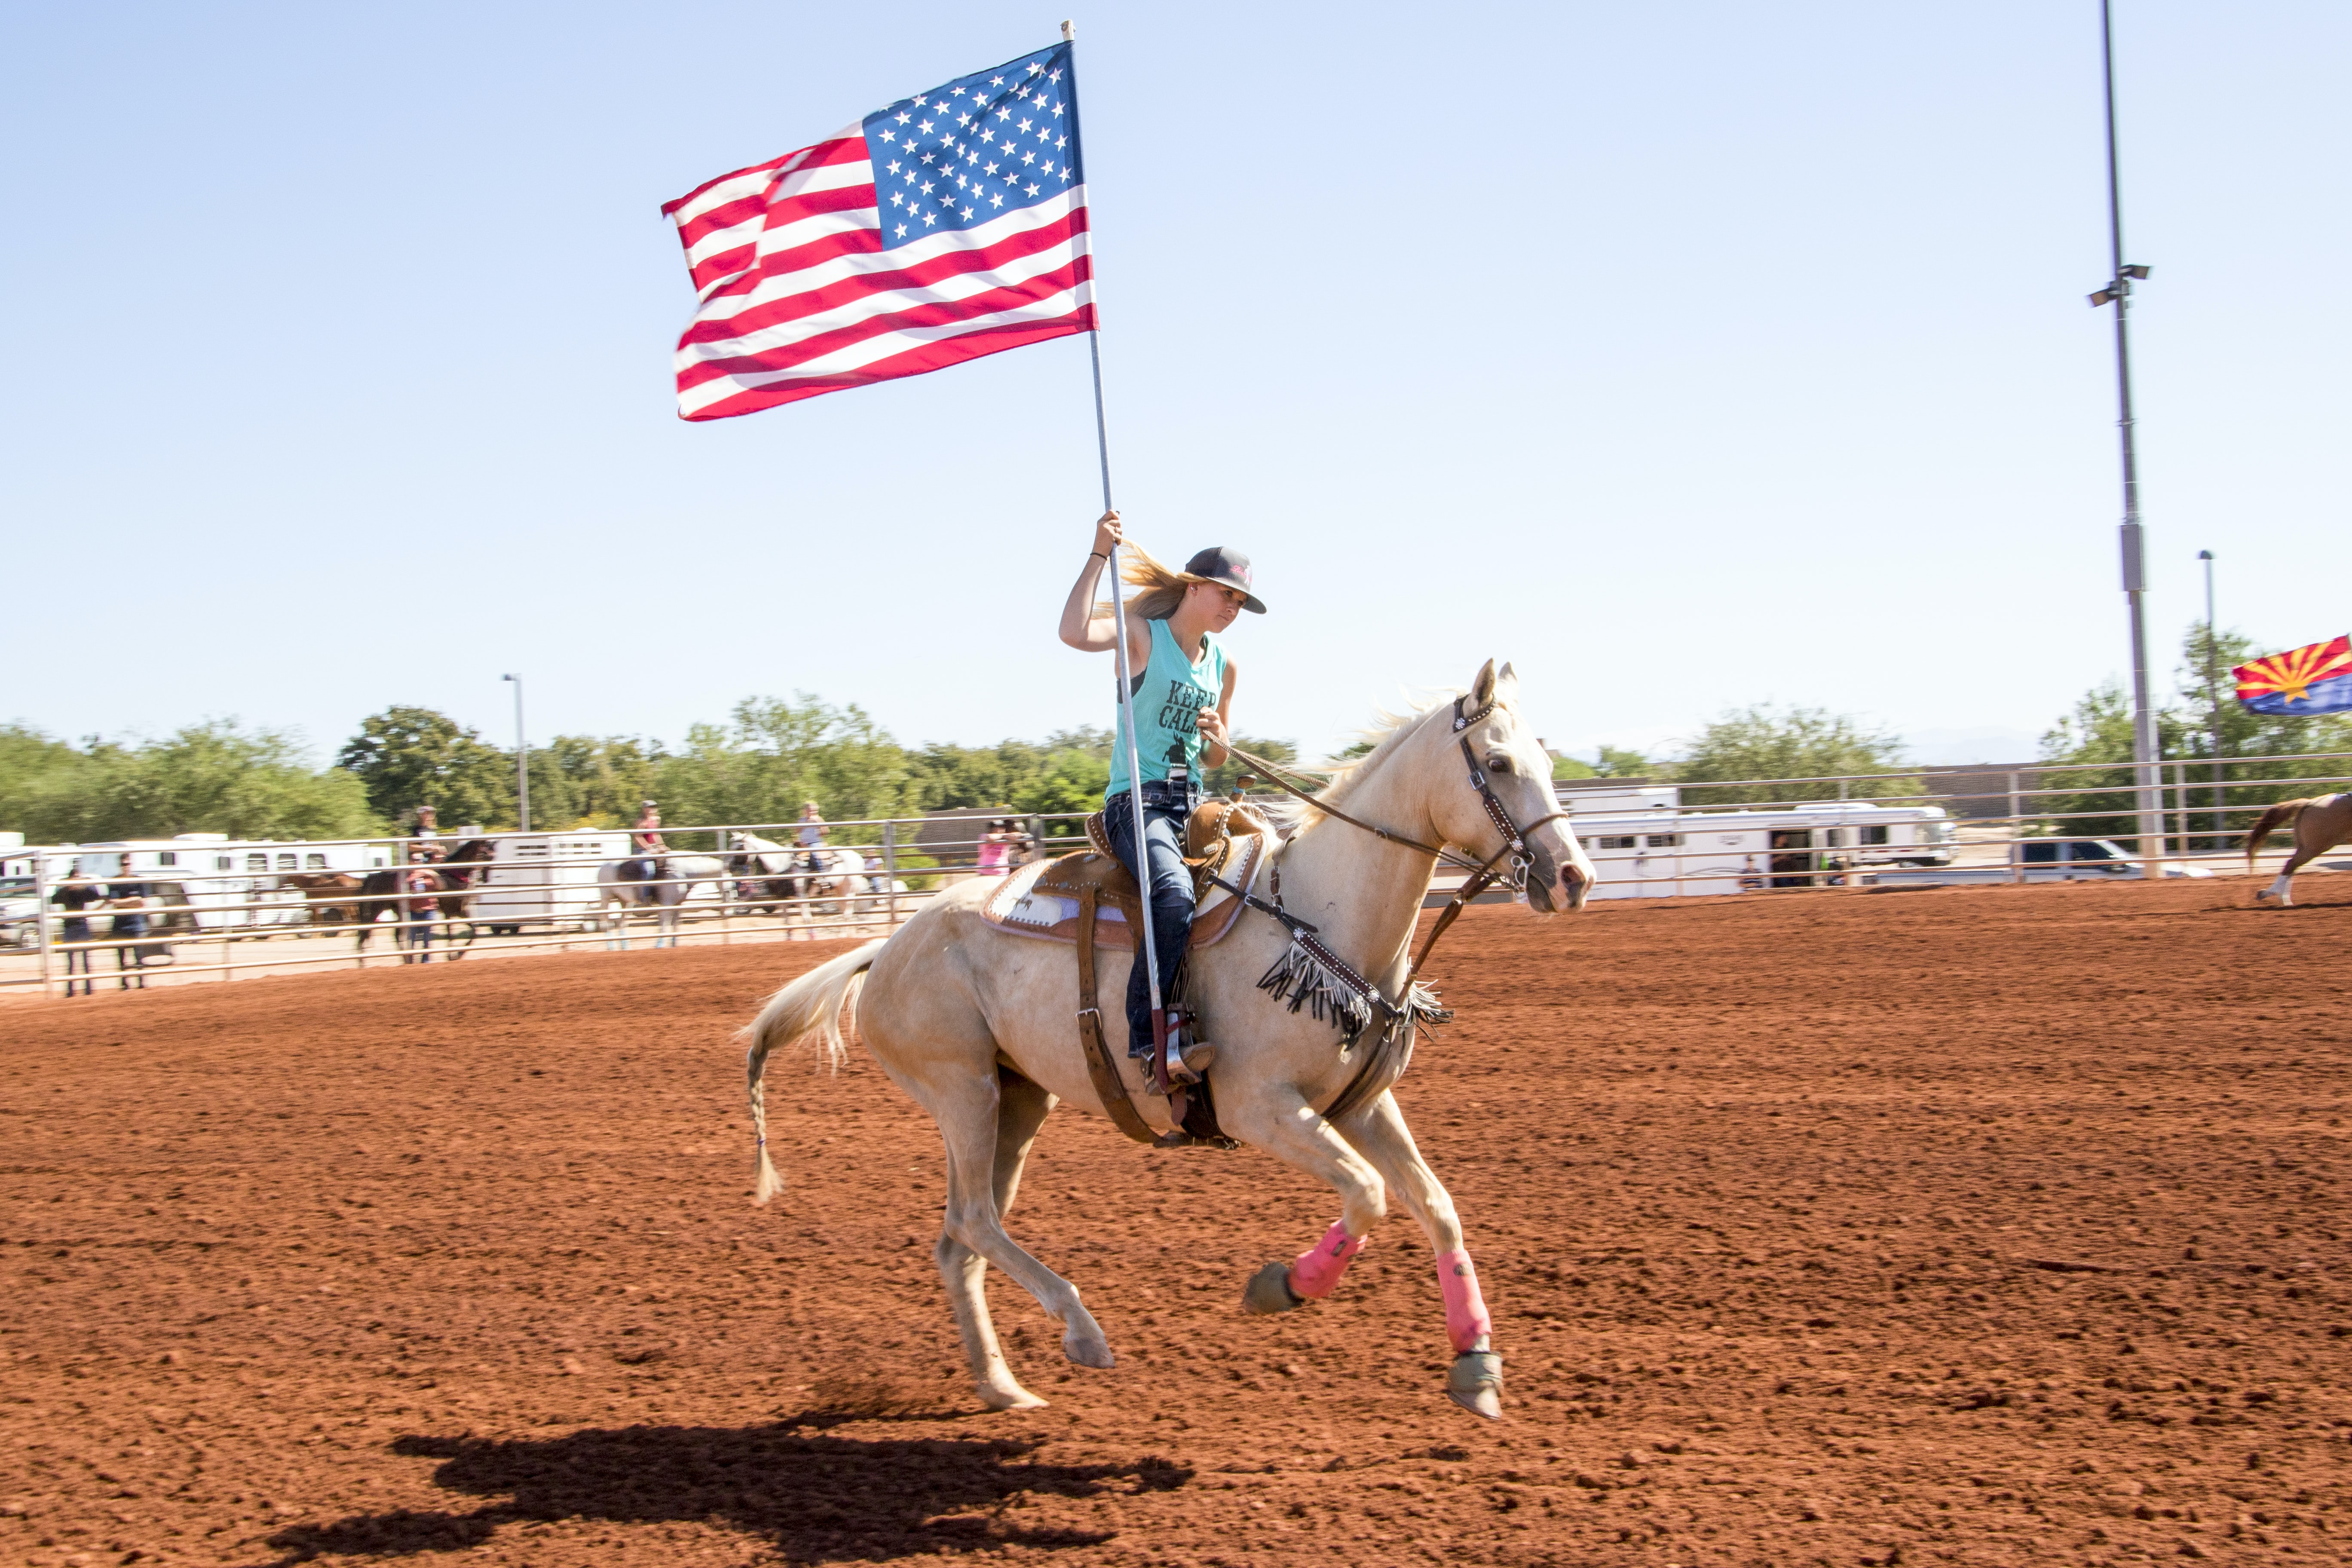 woman riding horse holding flag